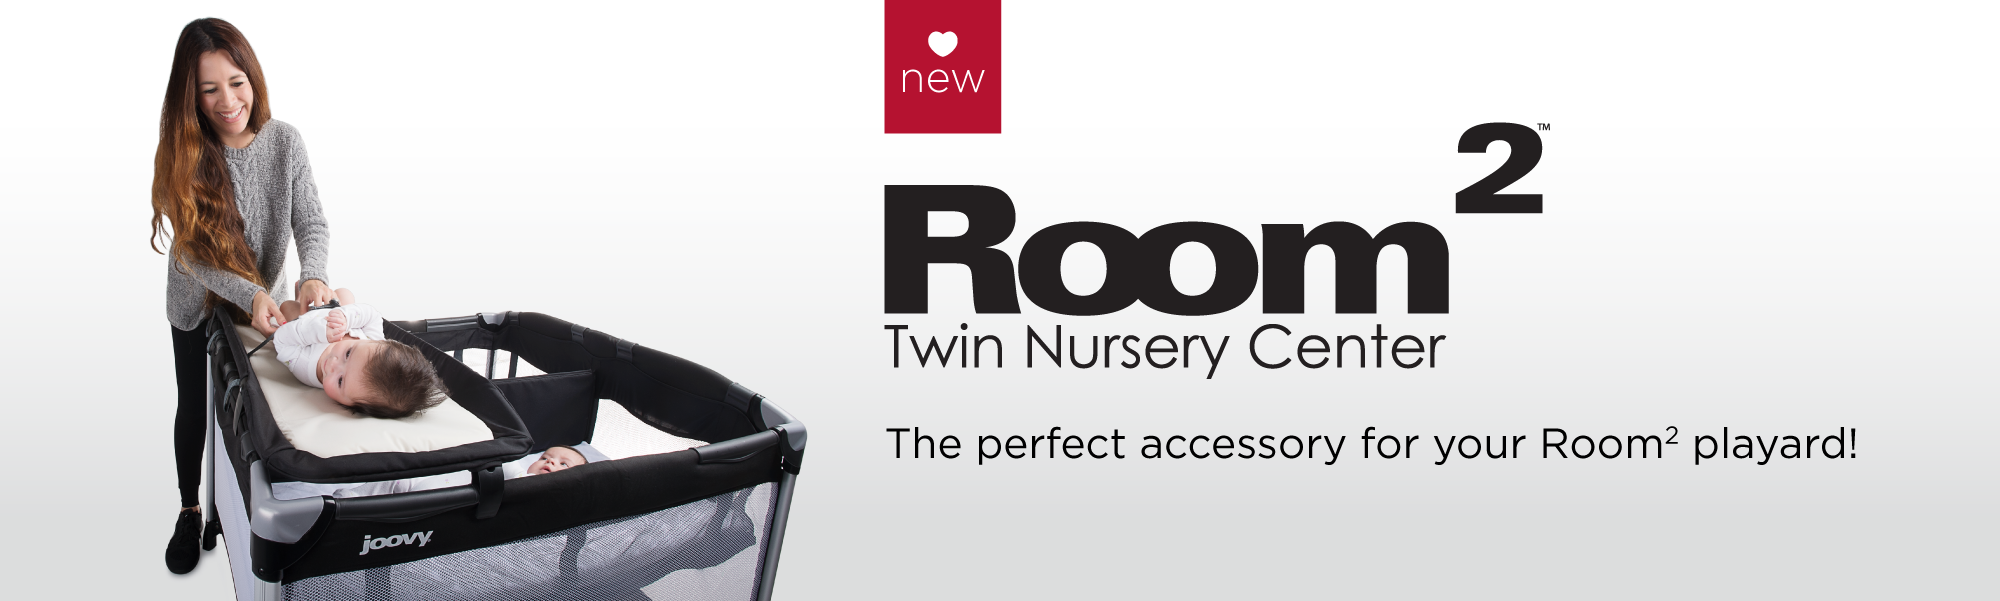 Room 178 Twin Nursery Center